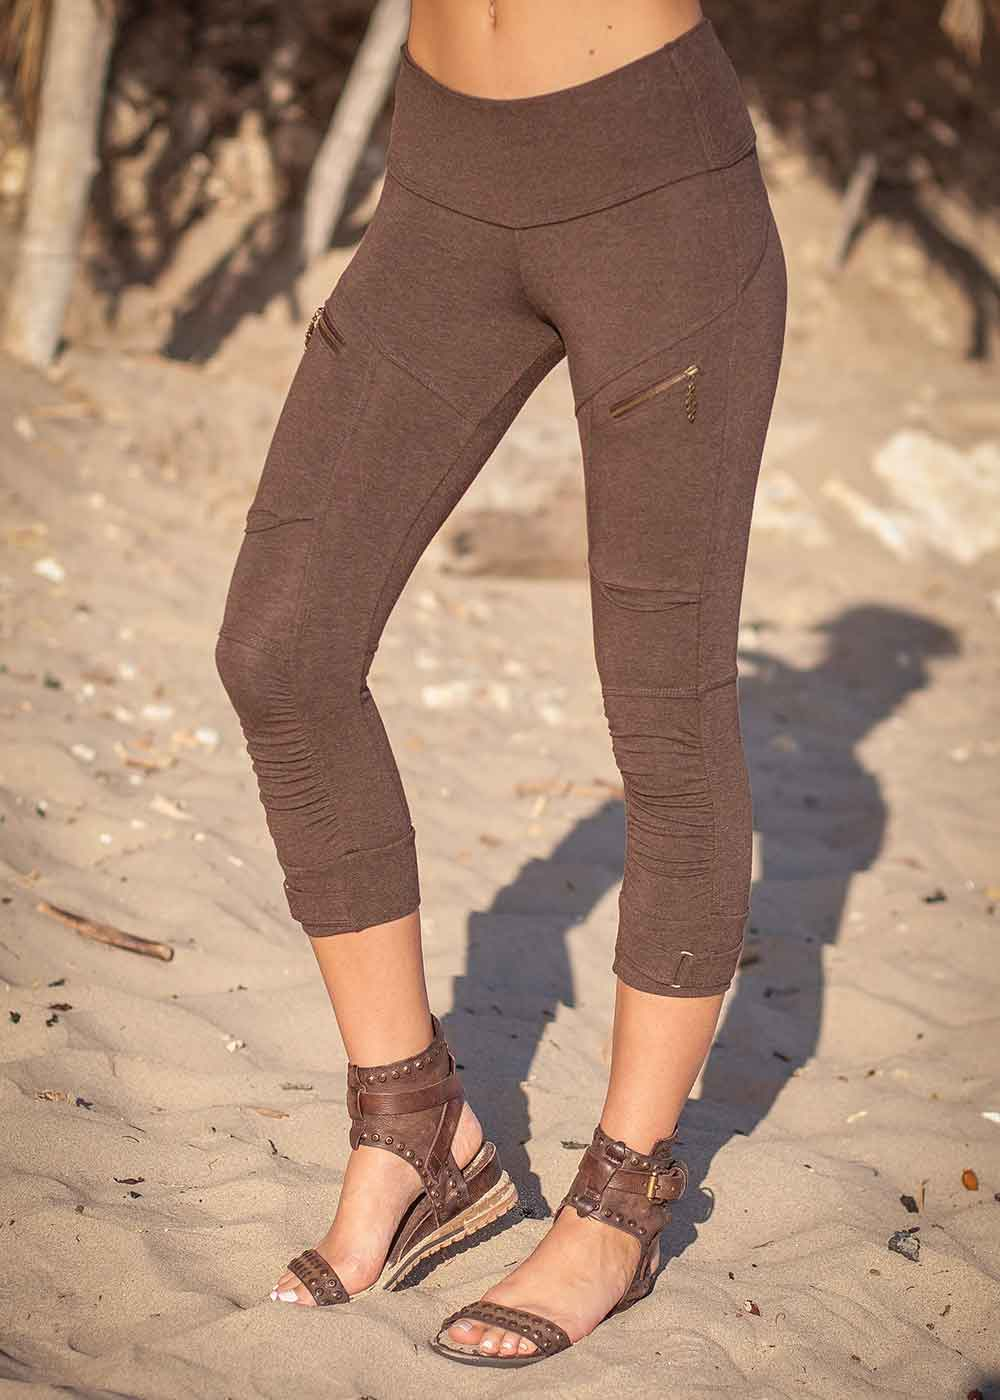 Rover pants in bamboo and organic cotton by Nomads Hemp Wear